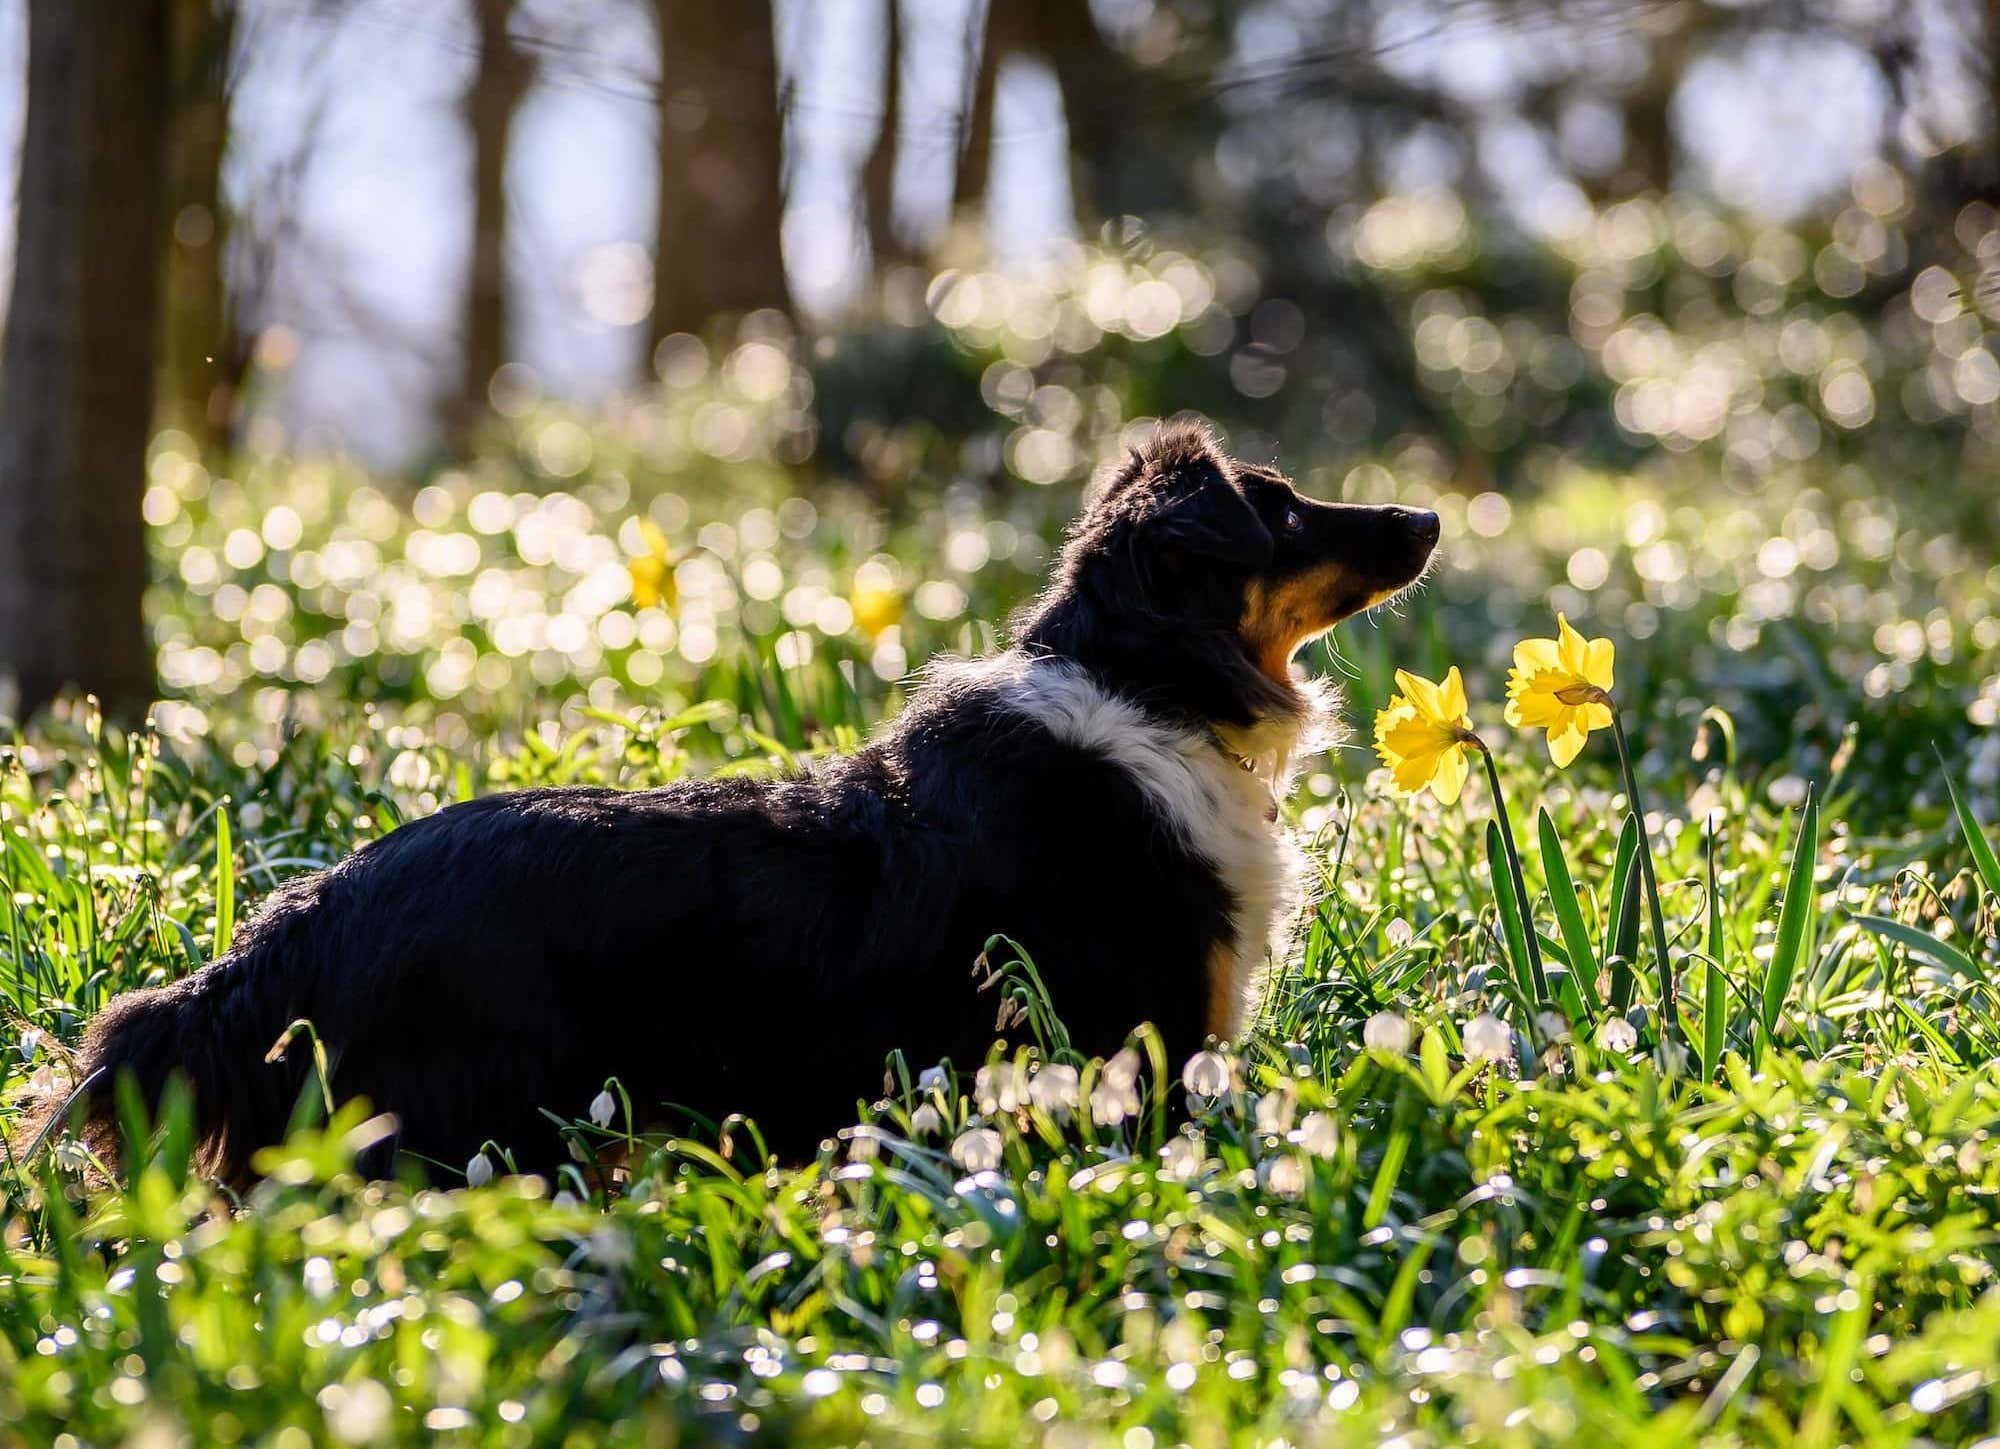 A dog walking in the woods amongst daffodils